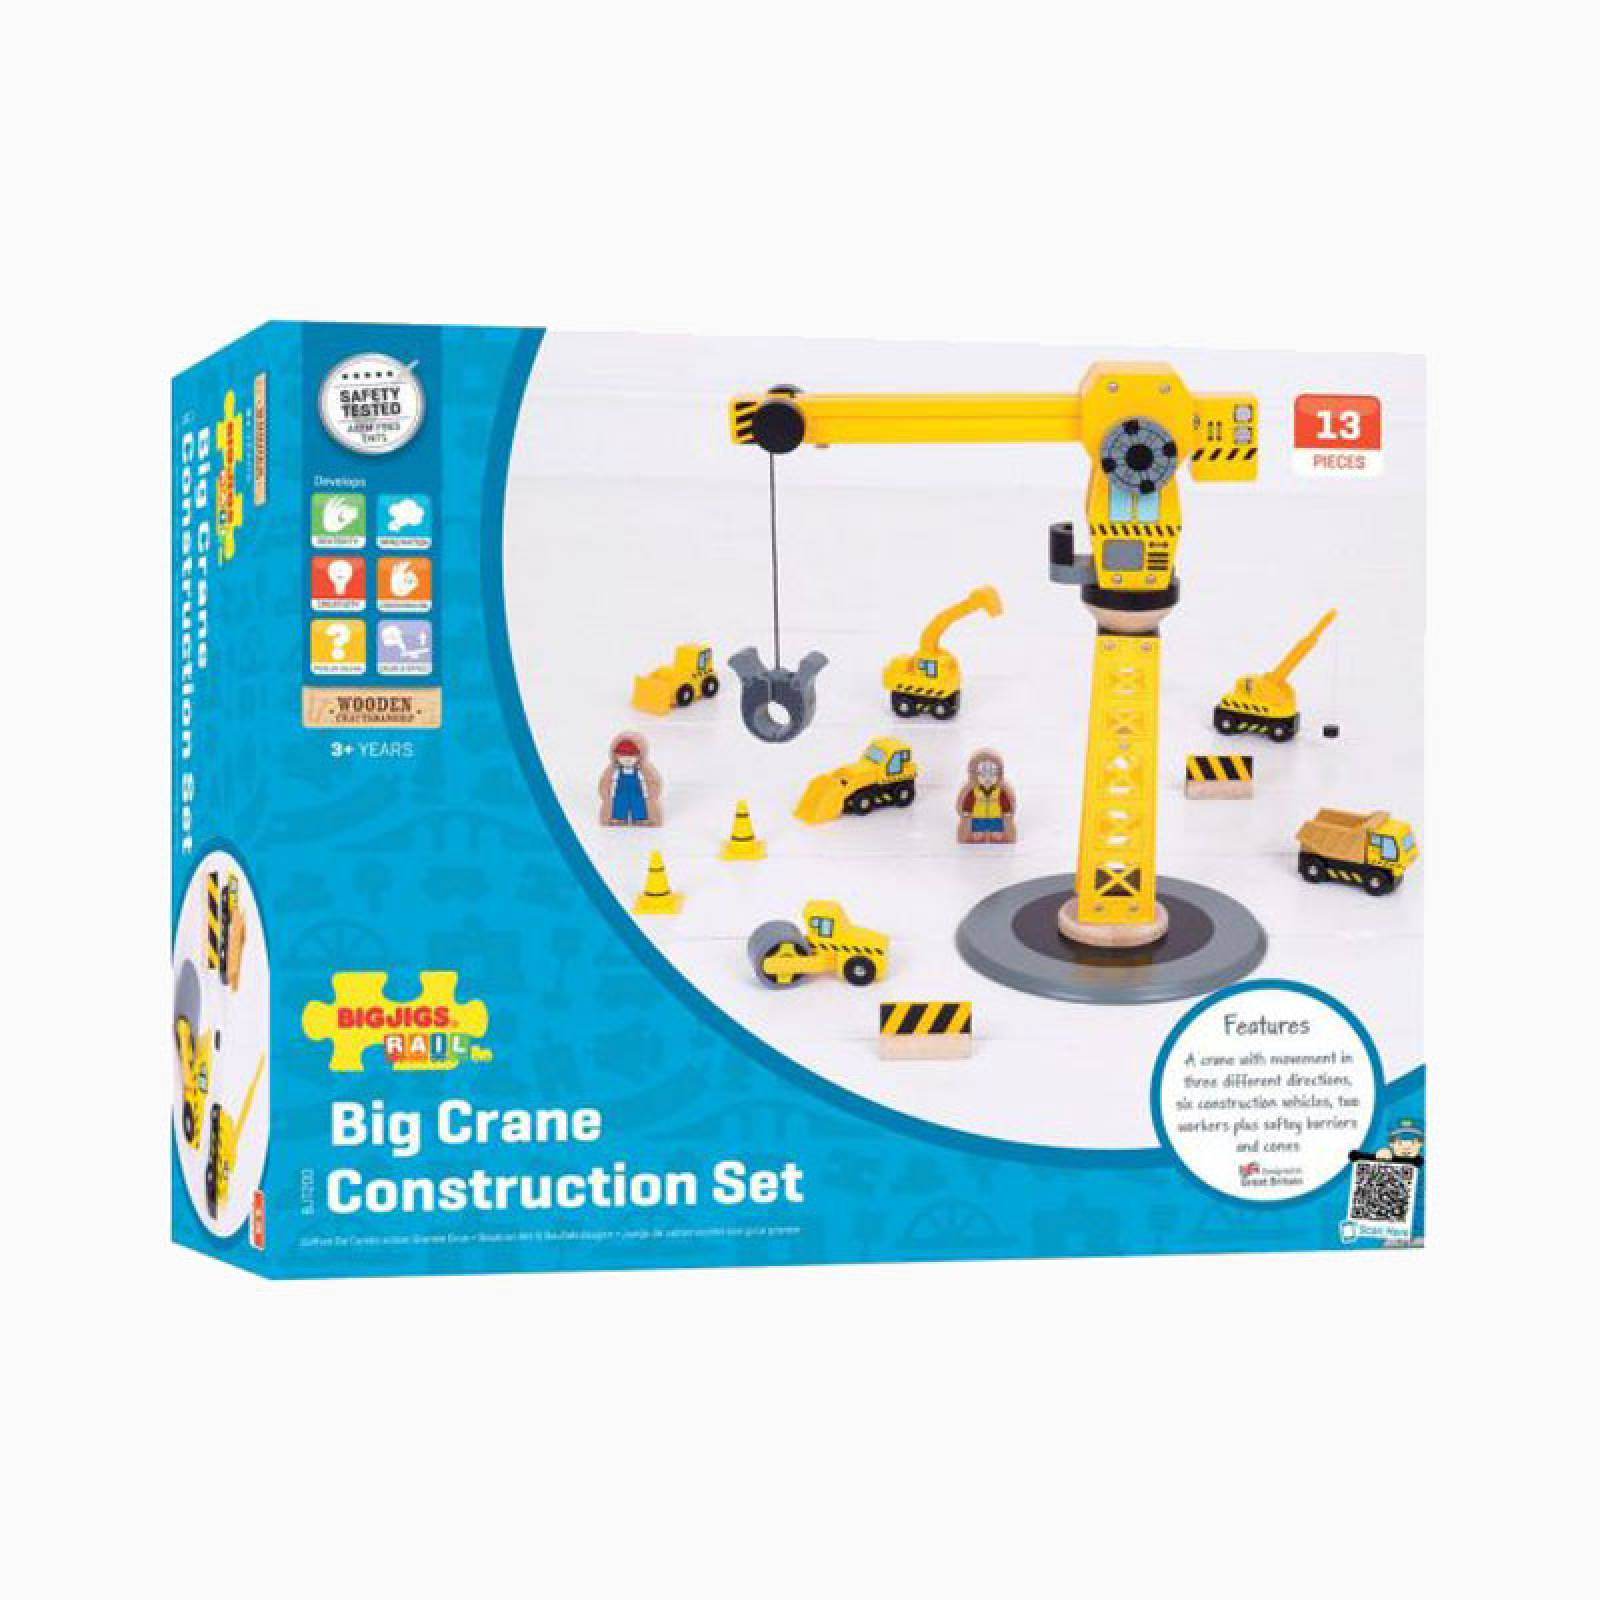 Big Yellow Crane Construction Set by Bigjigs 3+ thumbnails